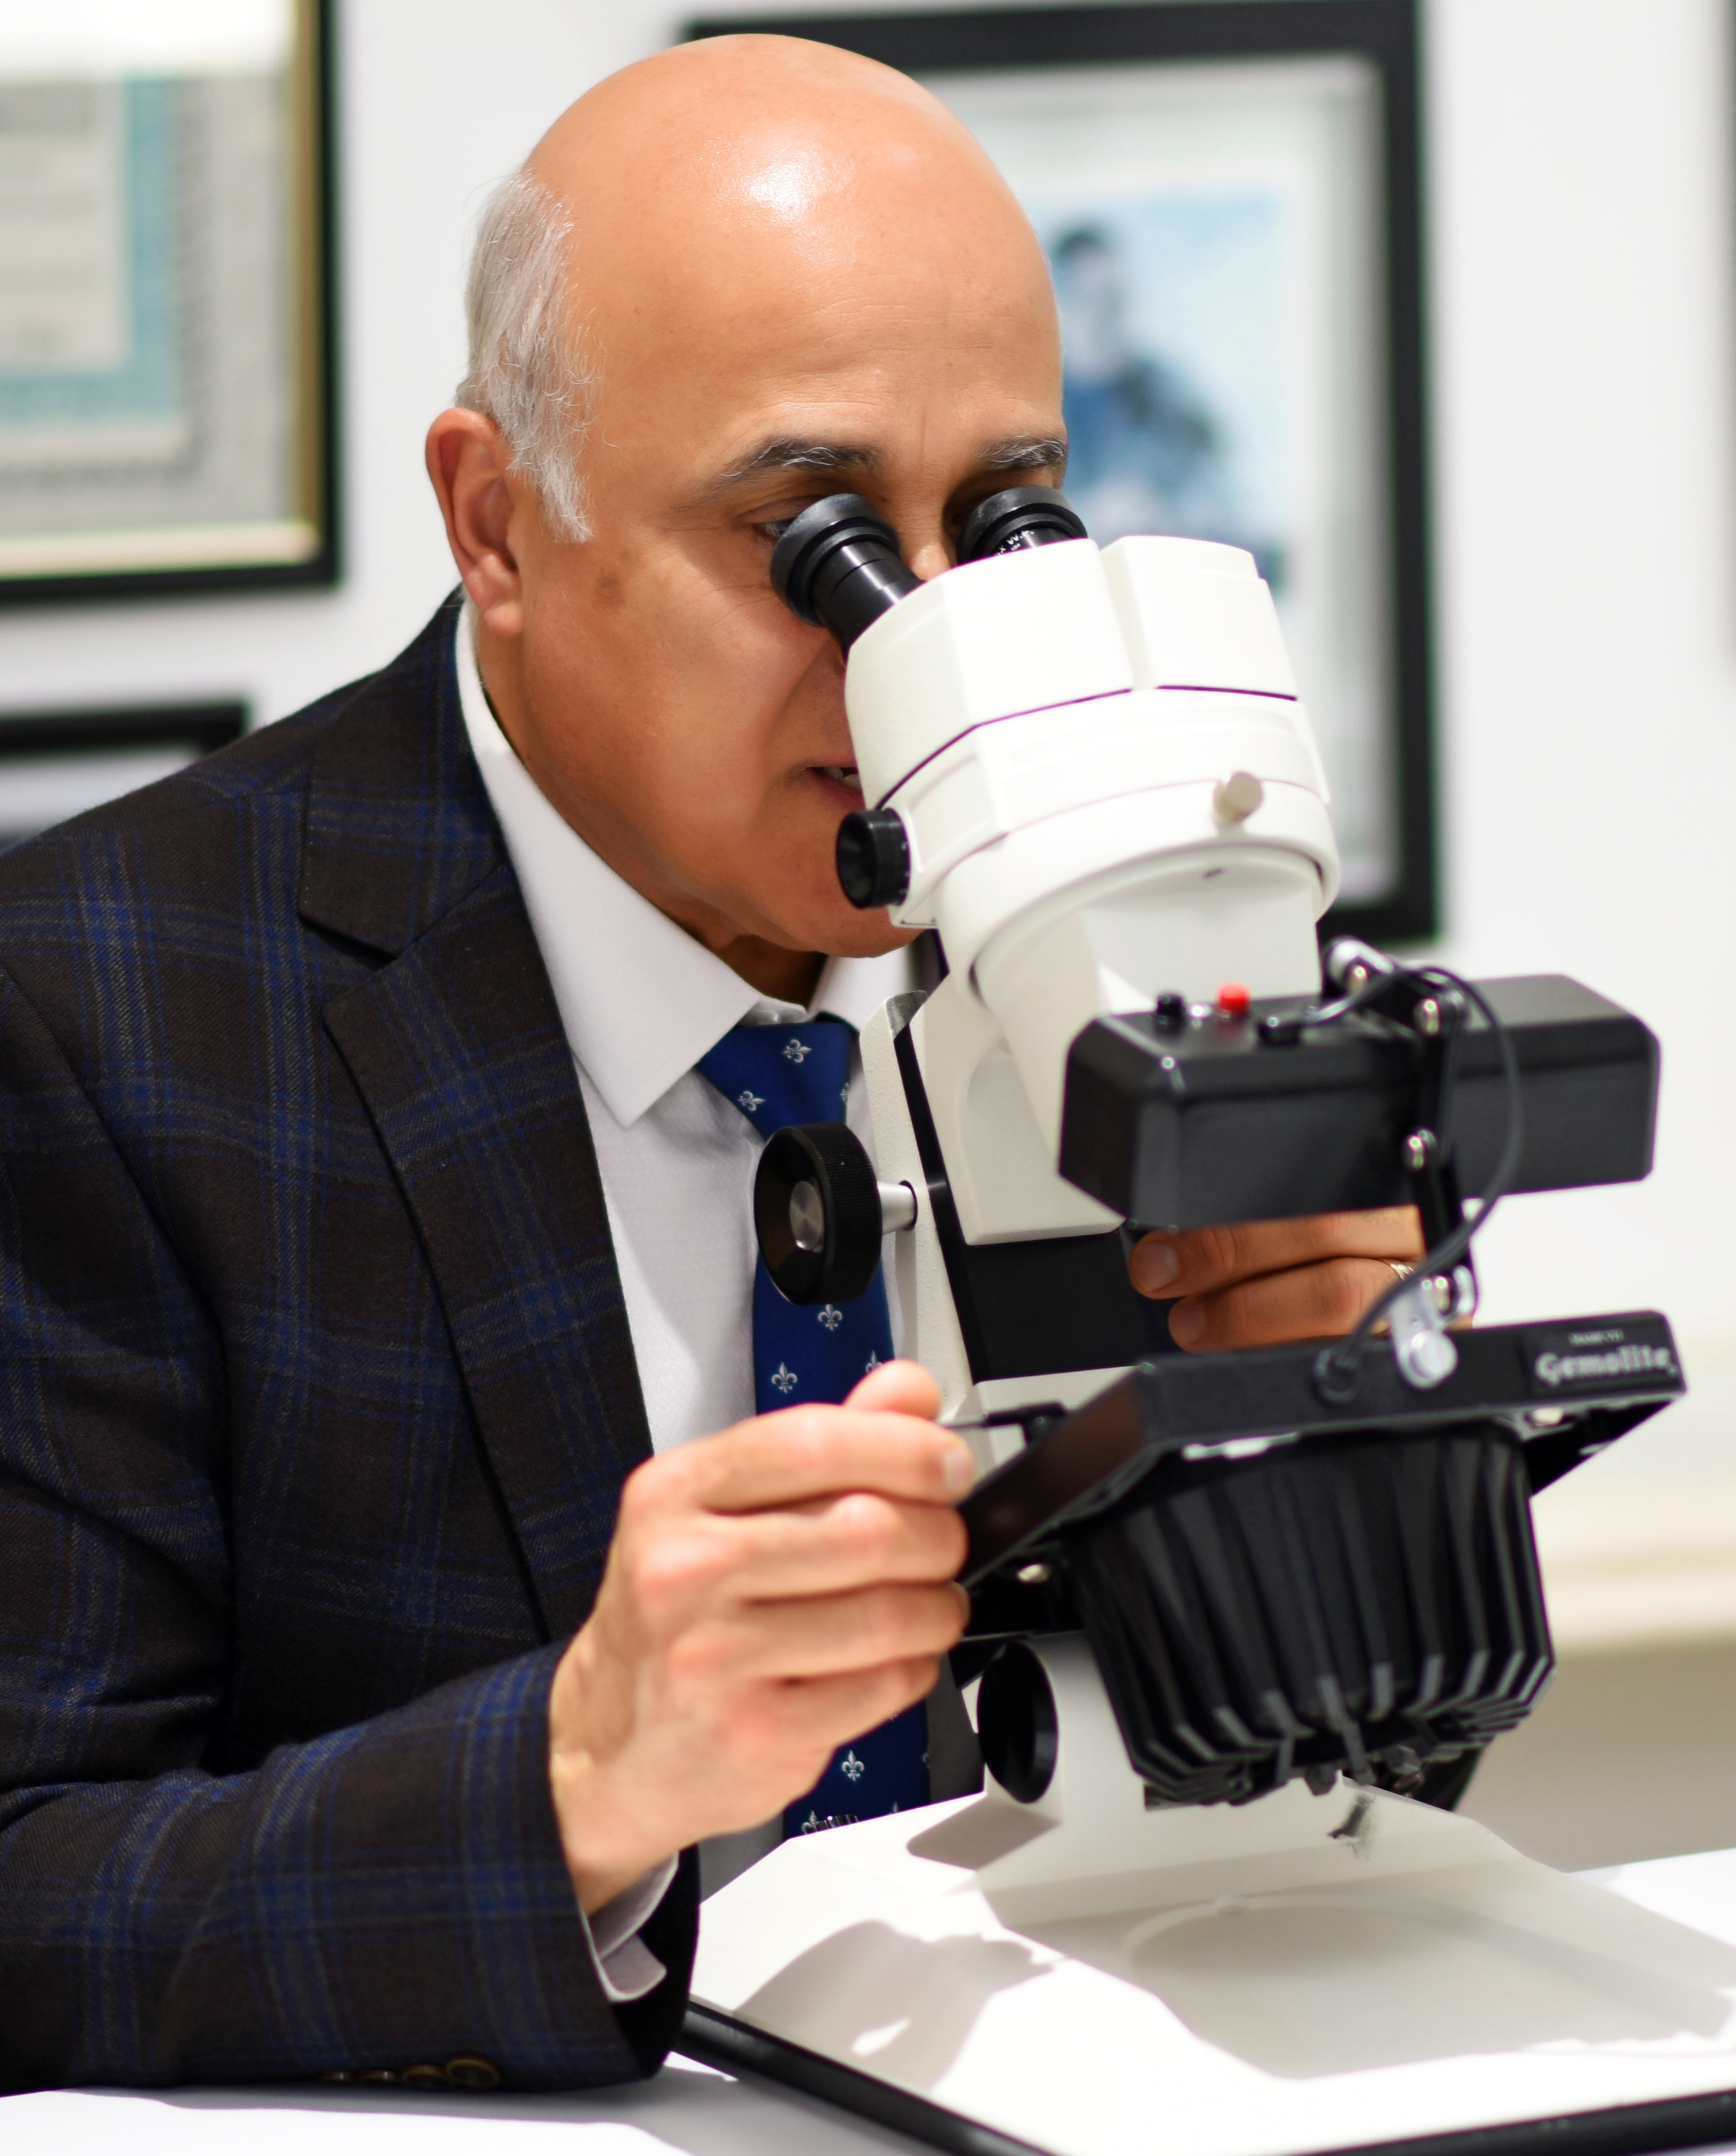 Inspecting jewelry through a microscope